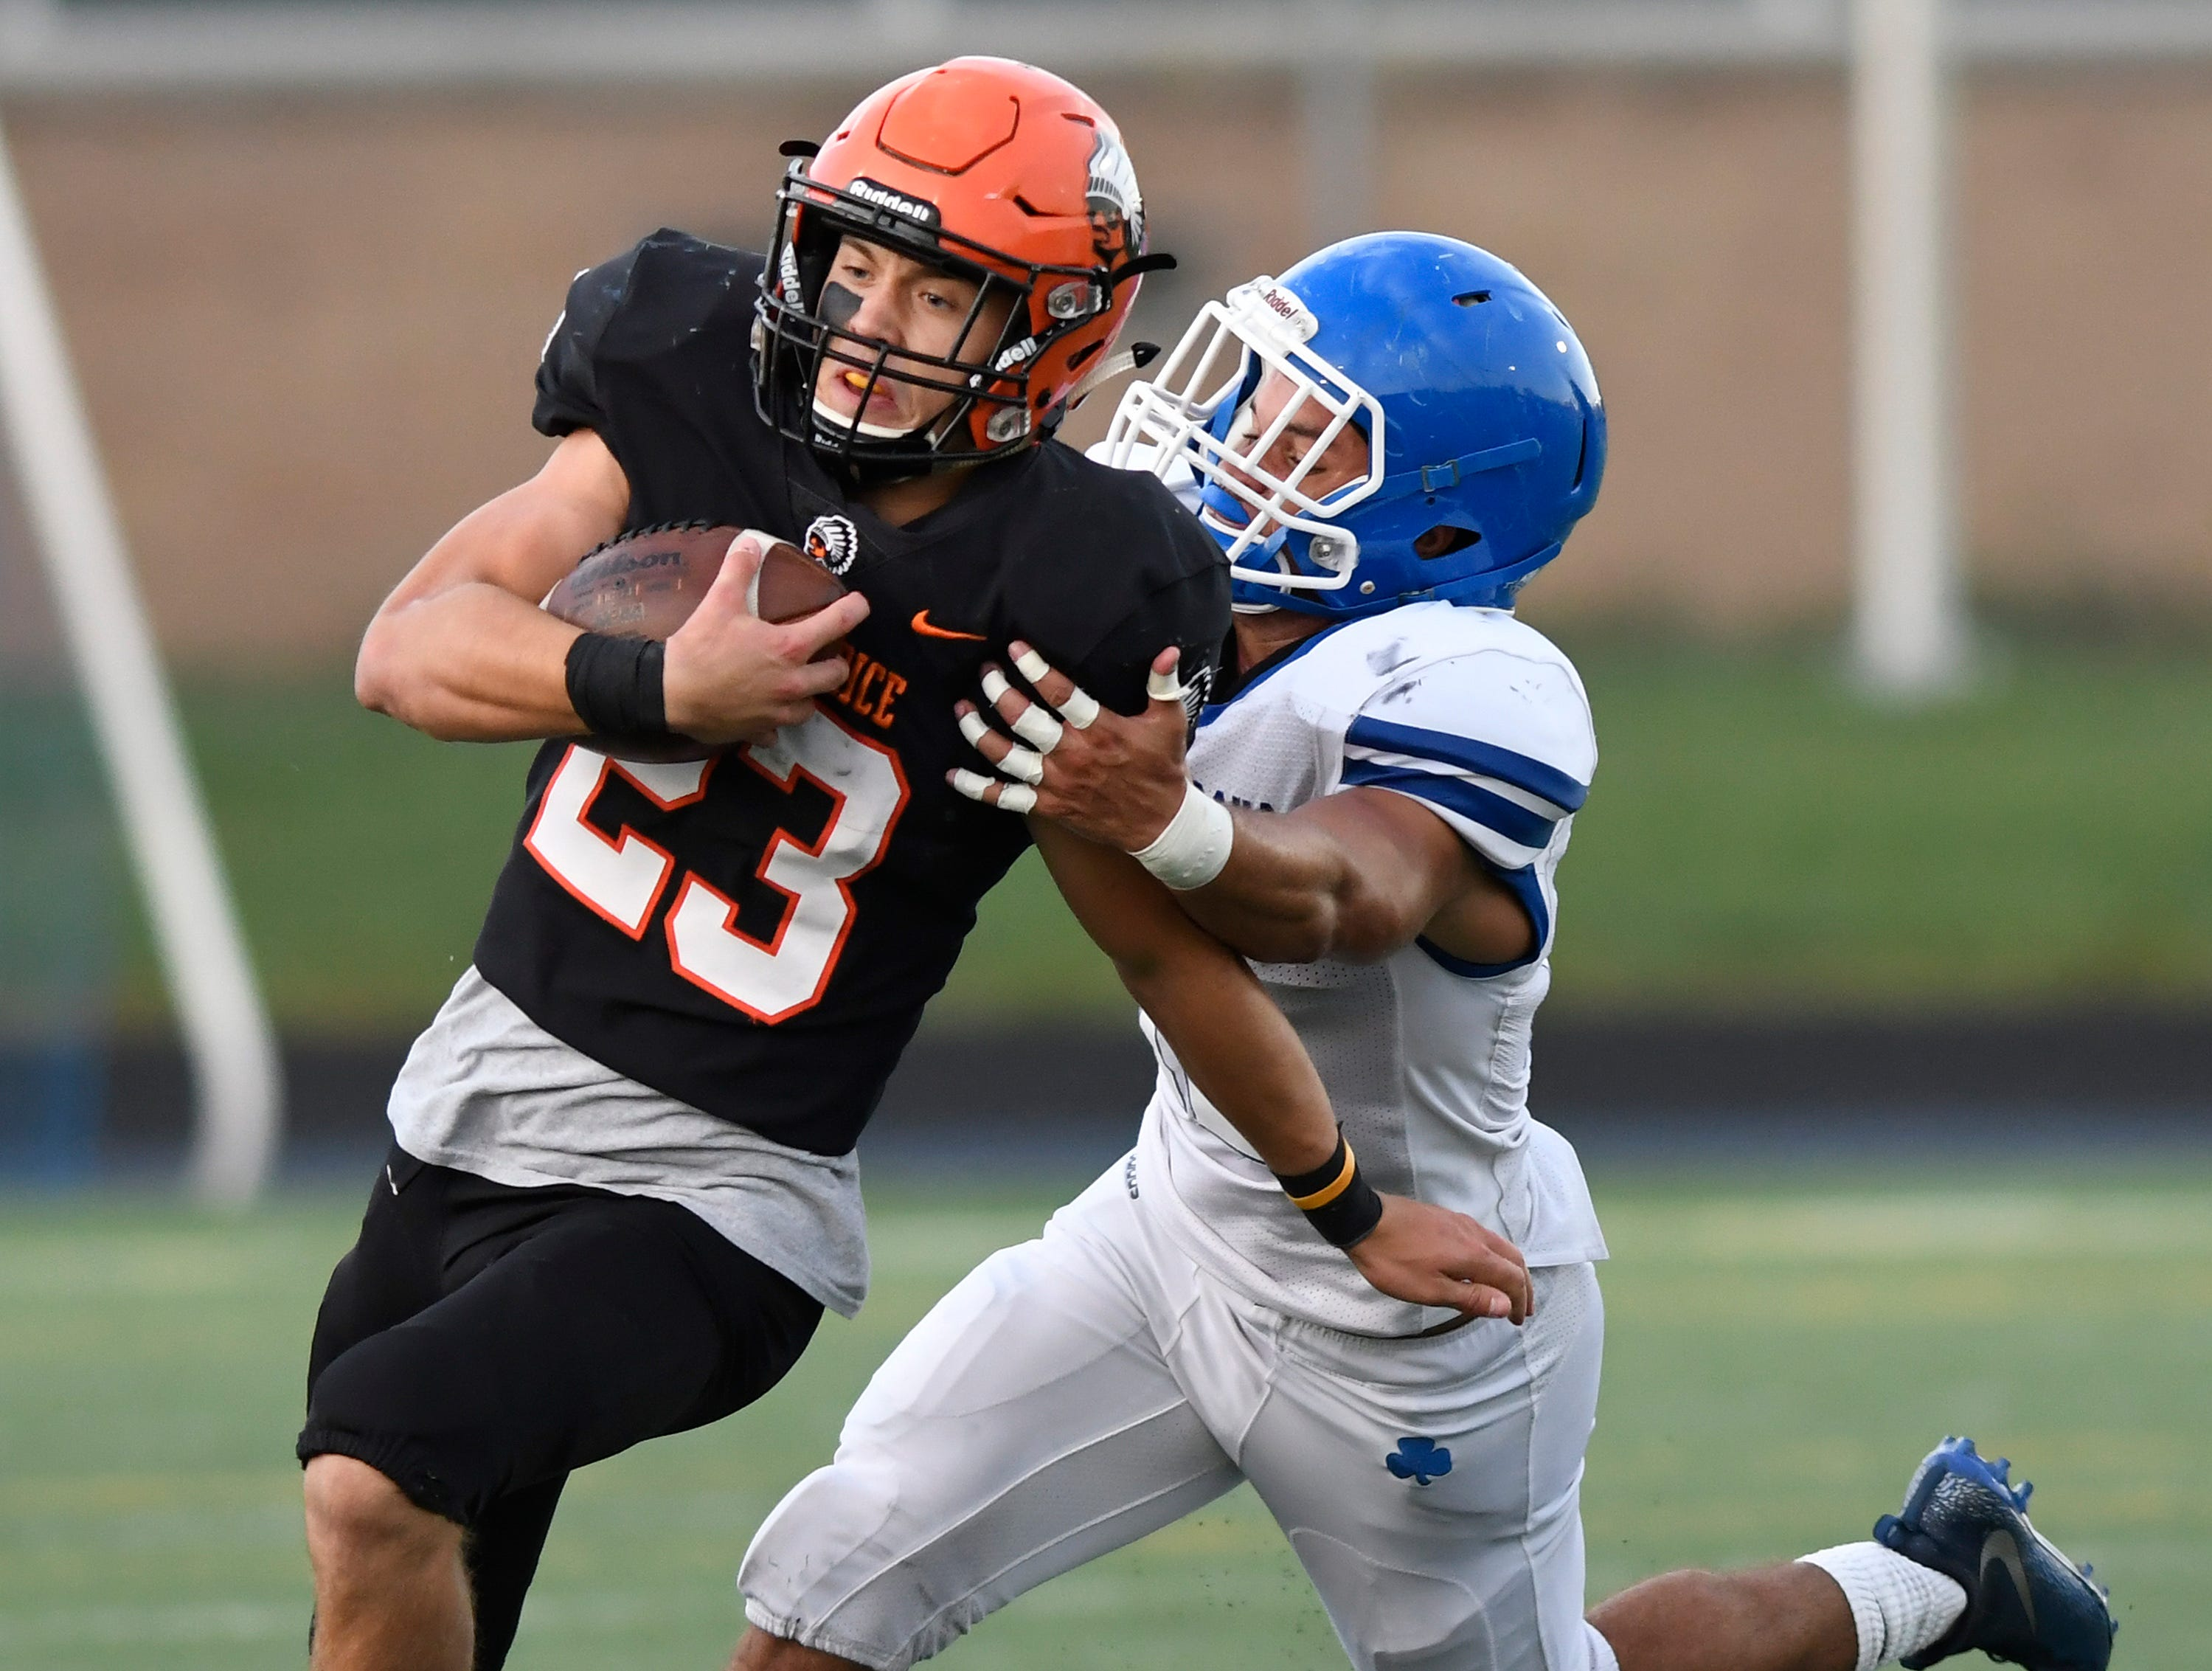 Birmingham Brother Rice running back James Donaldson (23) evades a tackle from Detroit Catholic Central linebacker Bryson Trantham (12) in the first quarter, Saturday, Sept. 22, 2018 at Hurley Field in Berkley, Mich.  Catholic Central defeated Brother Rice, 21-0.  (Jose Juarez/Hometown Life)